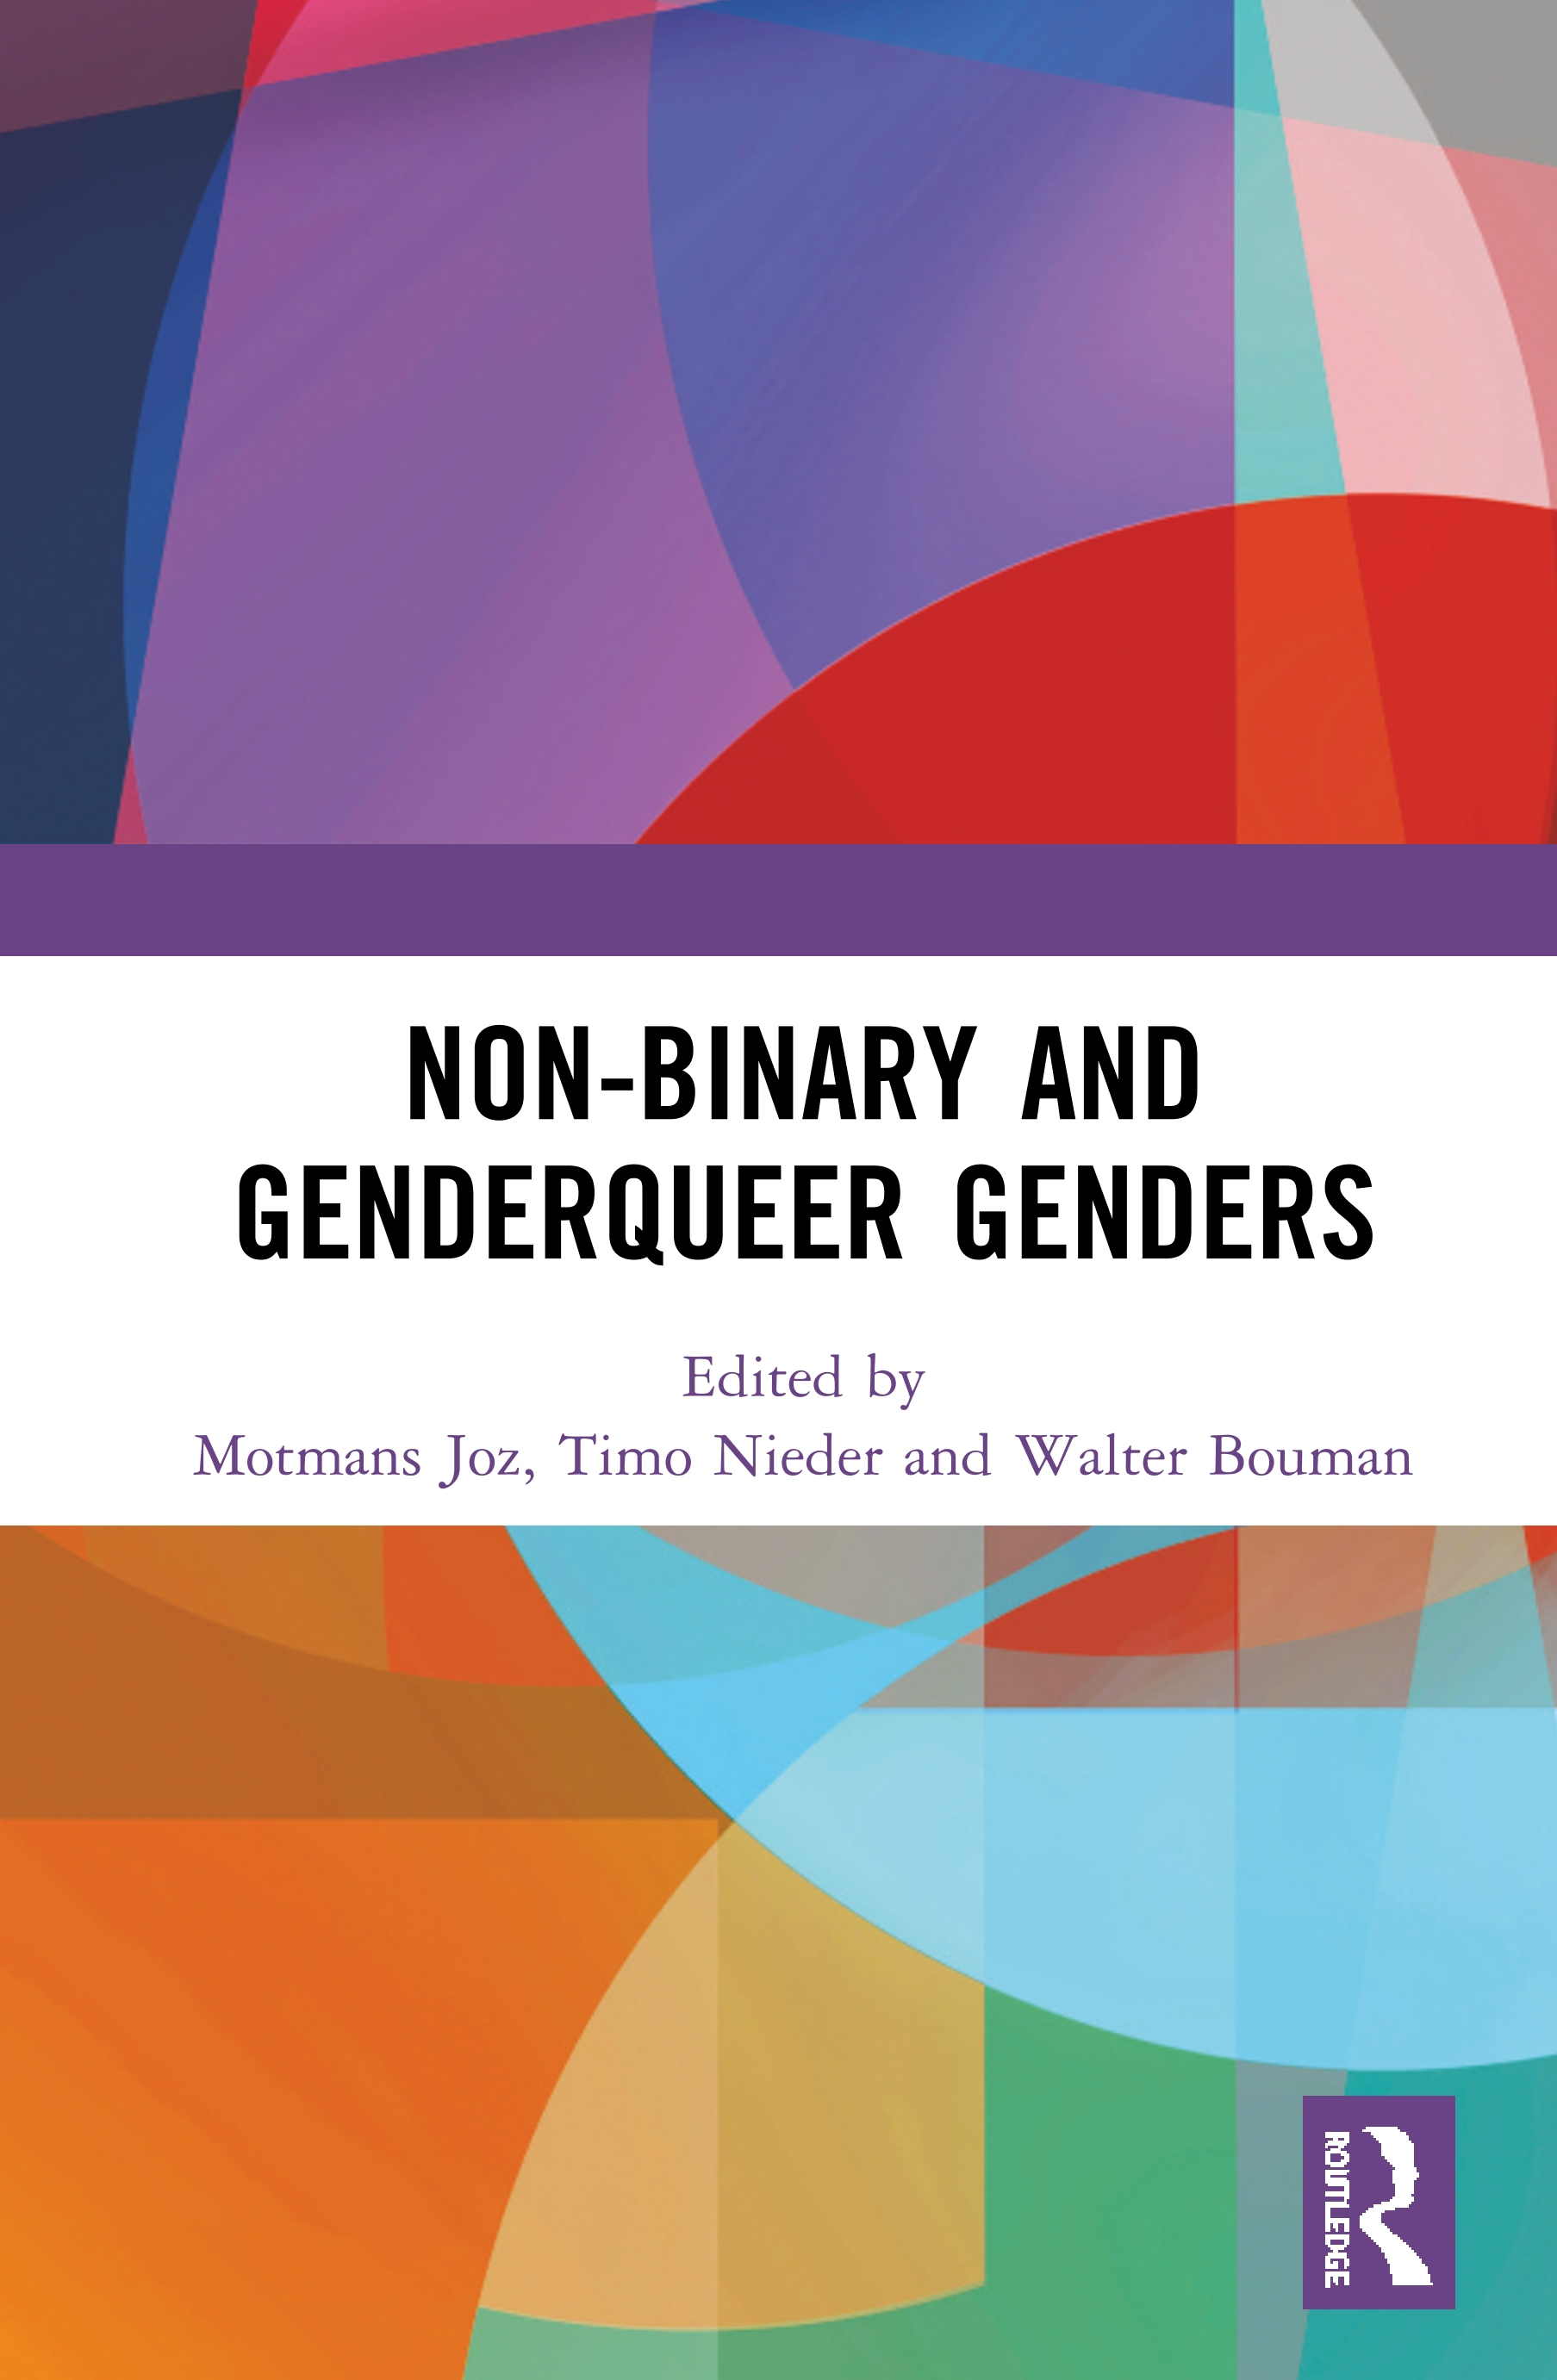 Non-binary and Genderqueer Genders book cover